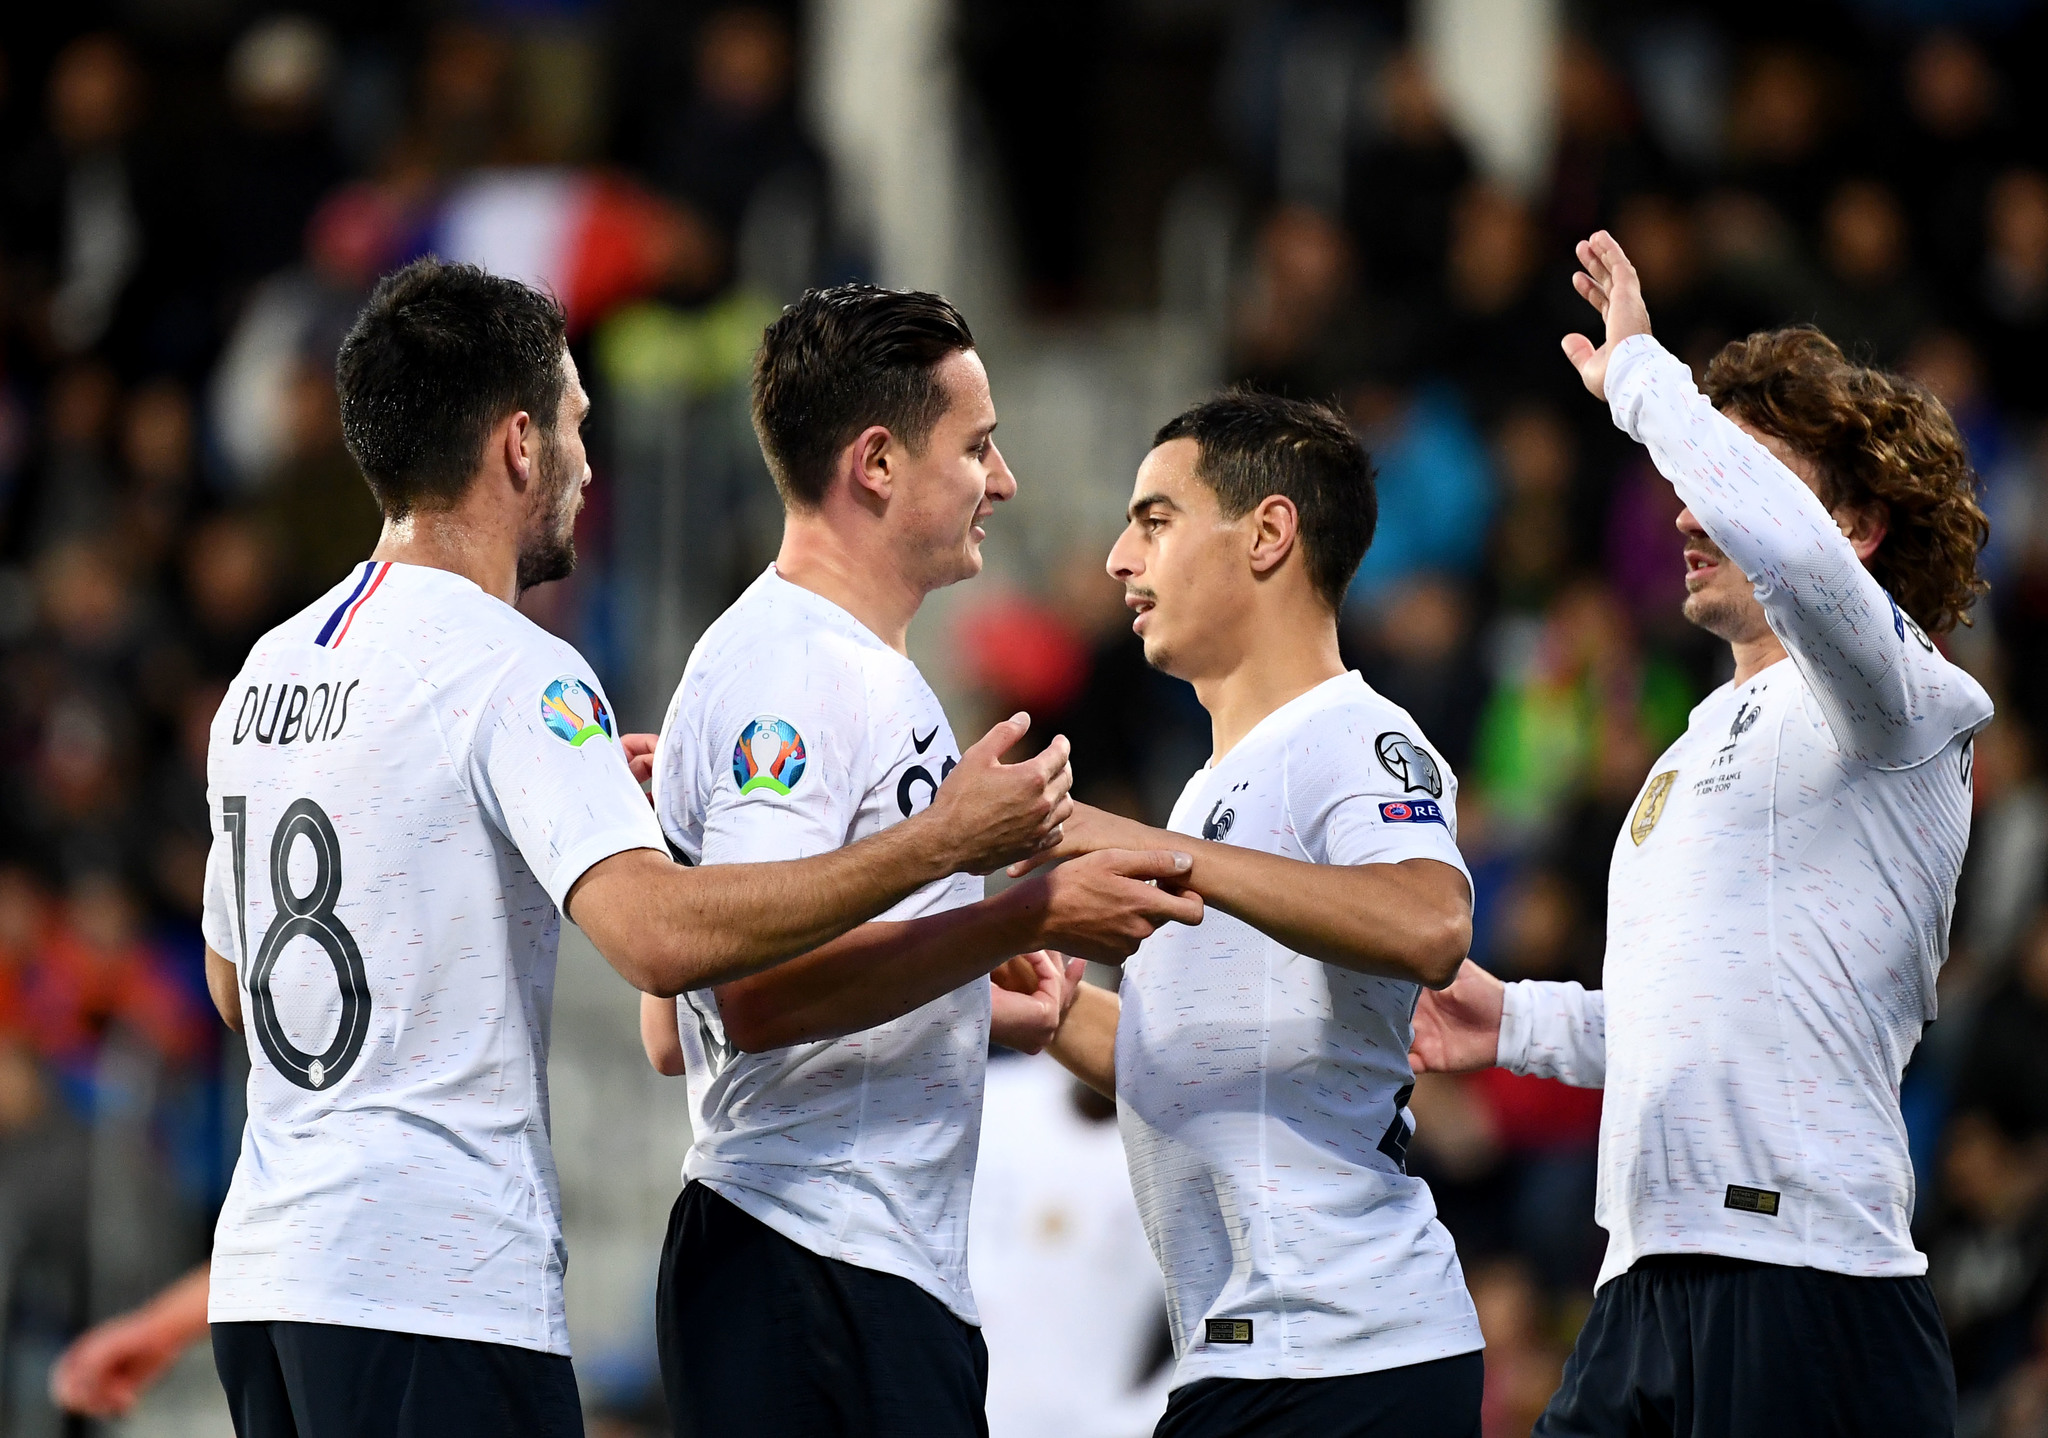 Frances forward Florian Thauvin (2L) celebrates with his teammates Frances forward Antoine Griezmann (R, Frances midfielder Wissam <HIT>Ben</HIT><HIT>Yedder</HIT> (2R) and Frances defender Leo Dubois after scoring during the UEFA Euro 2020 qualification football match between Andorra and France at the National stadium in Andorra La Vella, on June 11, 2019. (Photo by FRANCK FIFE / AFP)